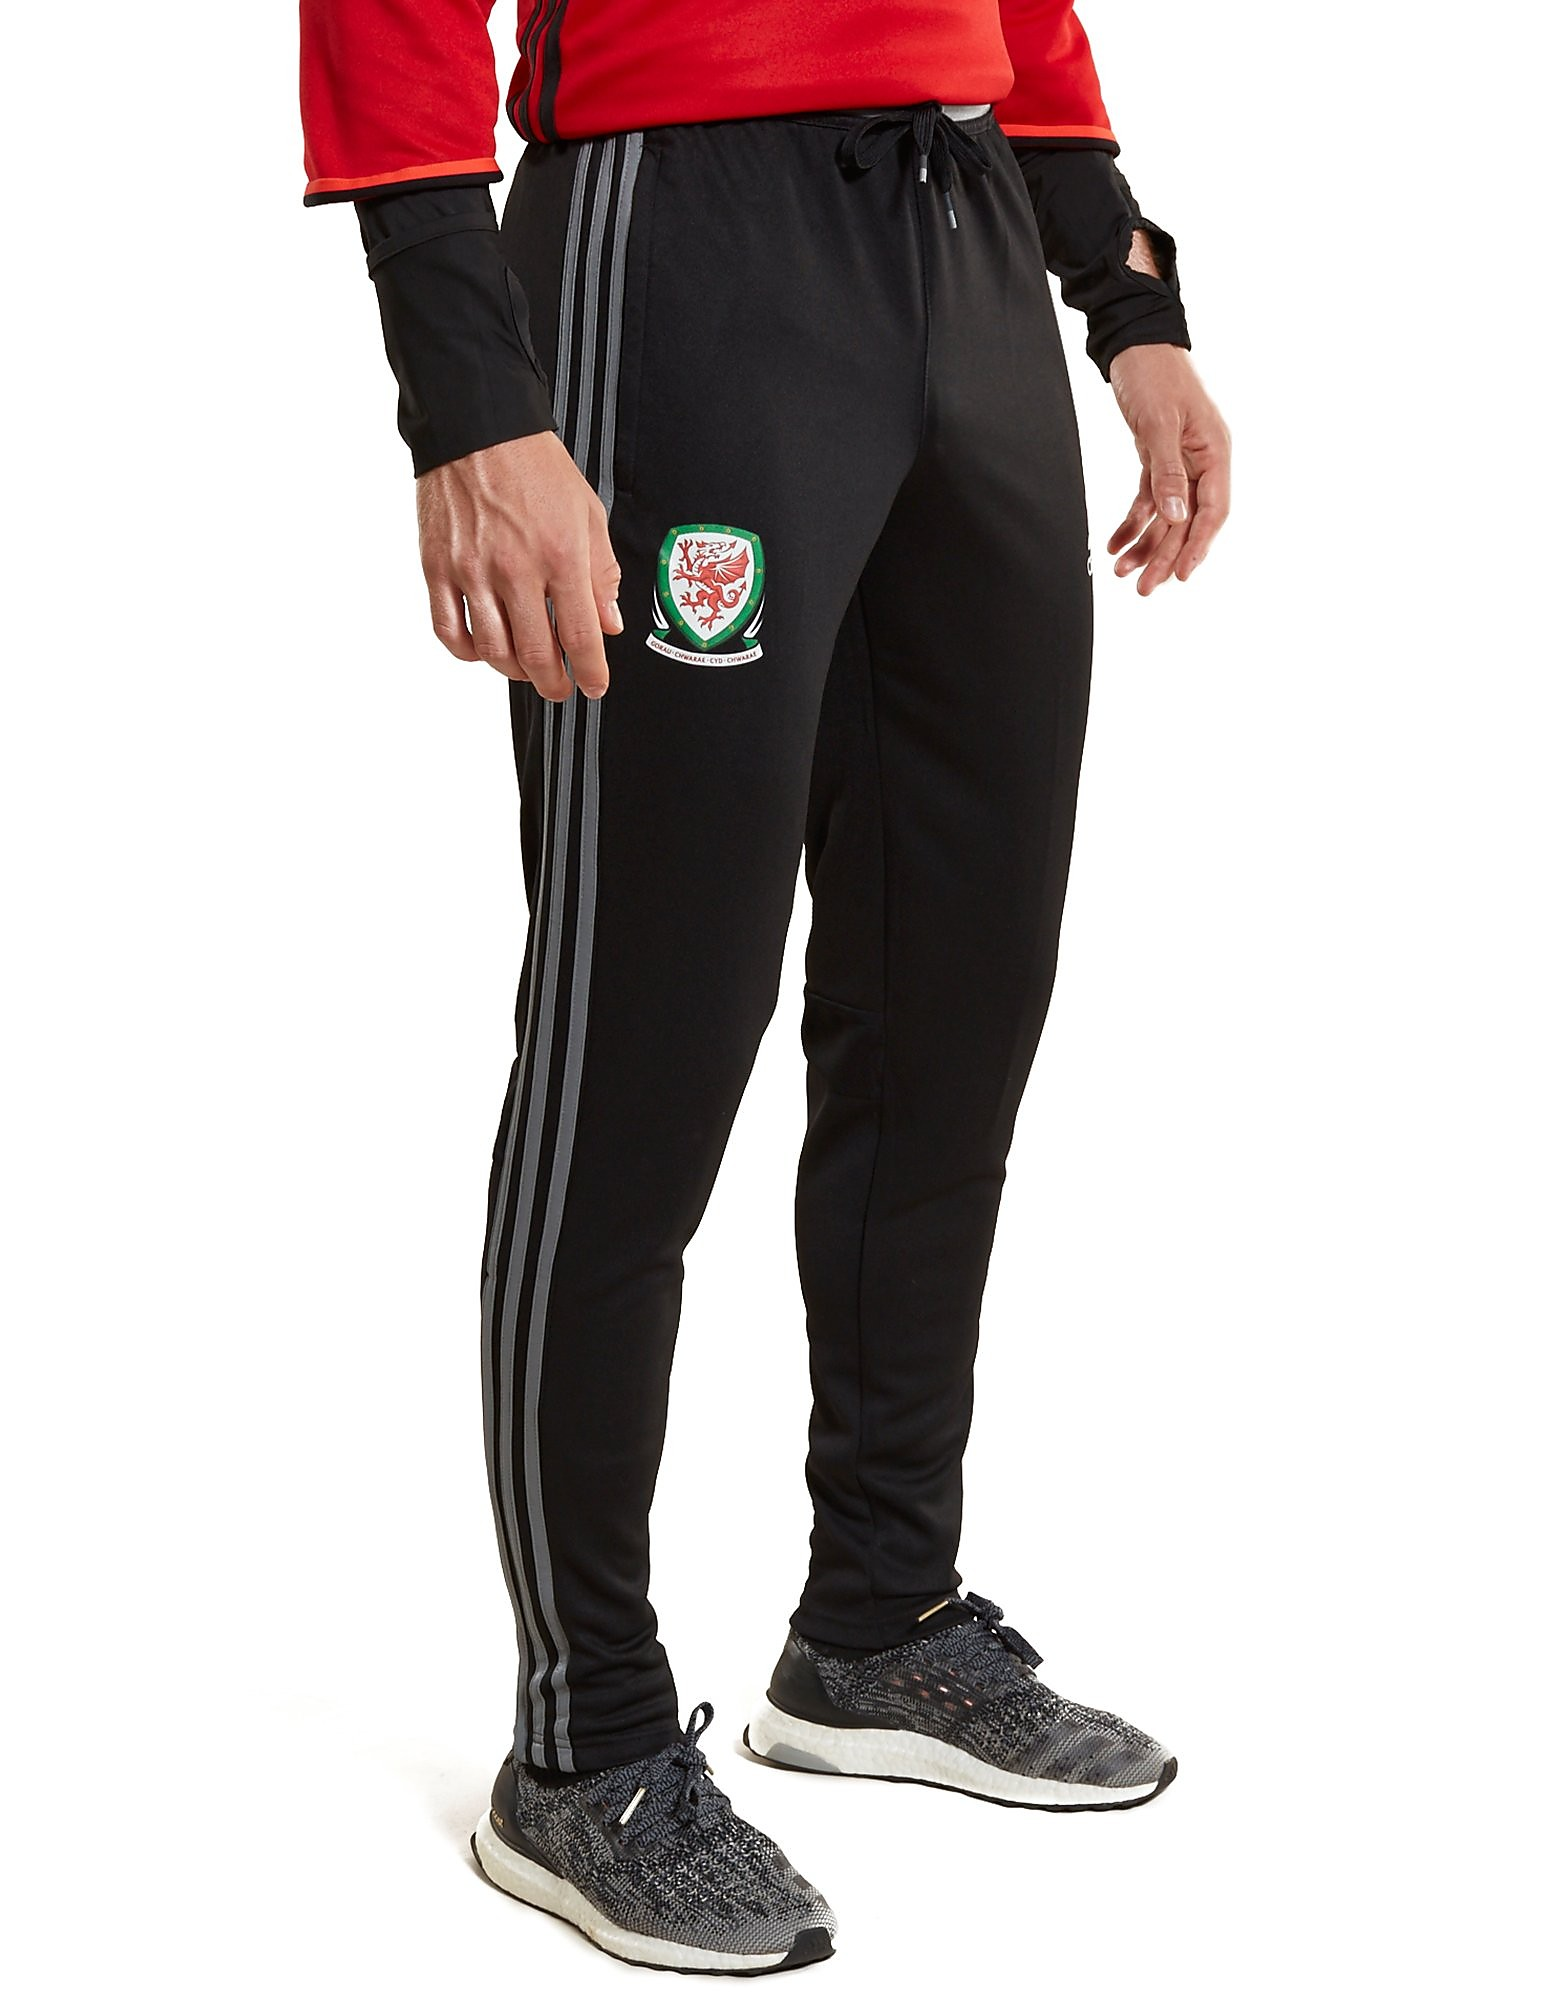 adidas Wales 2016/17 Training Pants PRE-ORDER